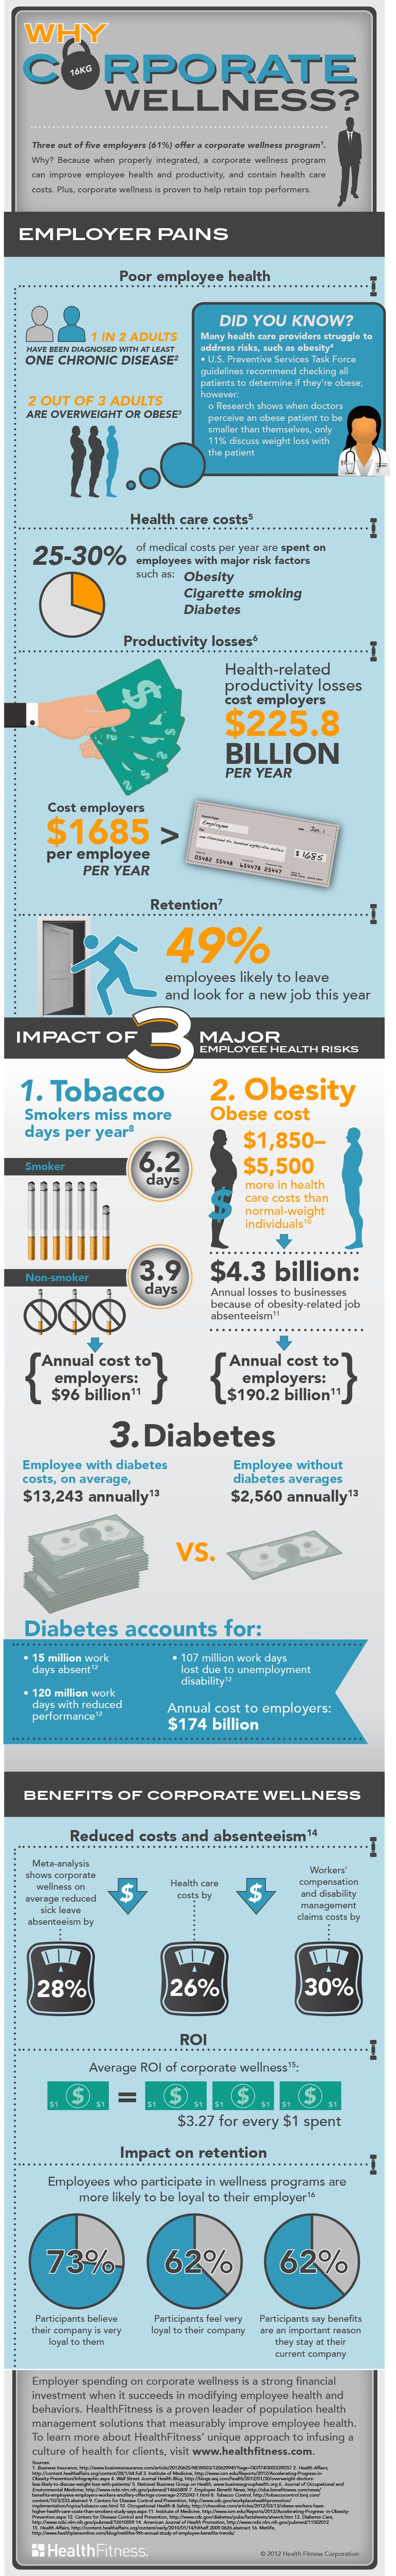 Corporate Wellness infographic about how wellness programs can improve employee health and productivity and contain health care costs.